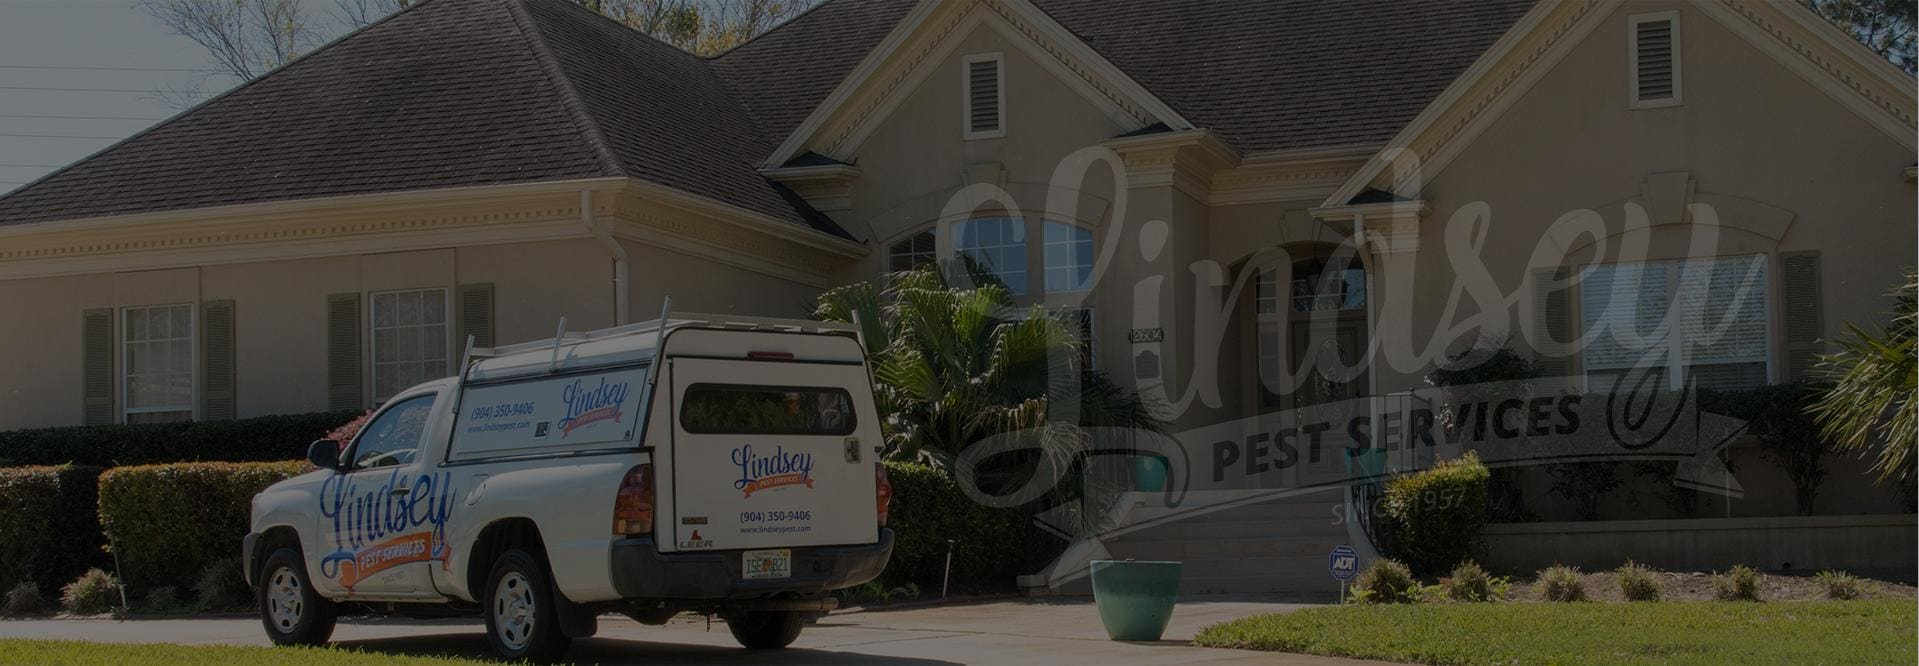 a lindsey pest service pest control truck outside of a jacksonville beach home